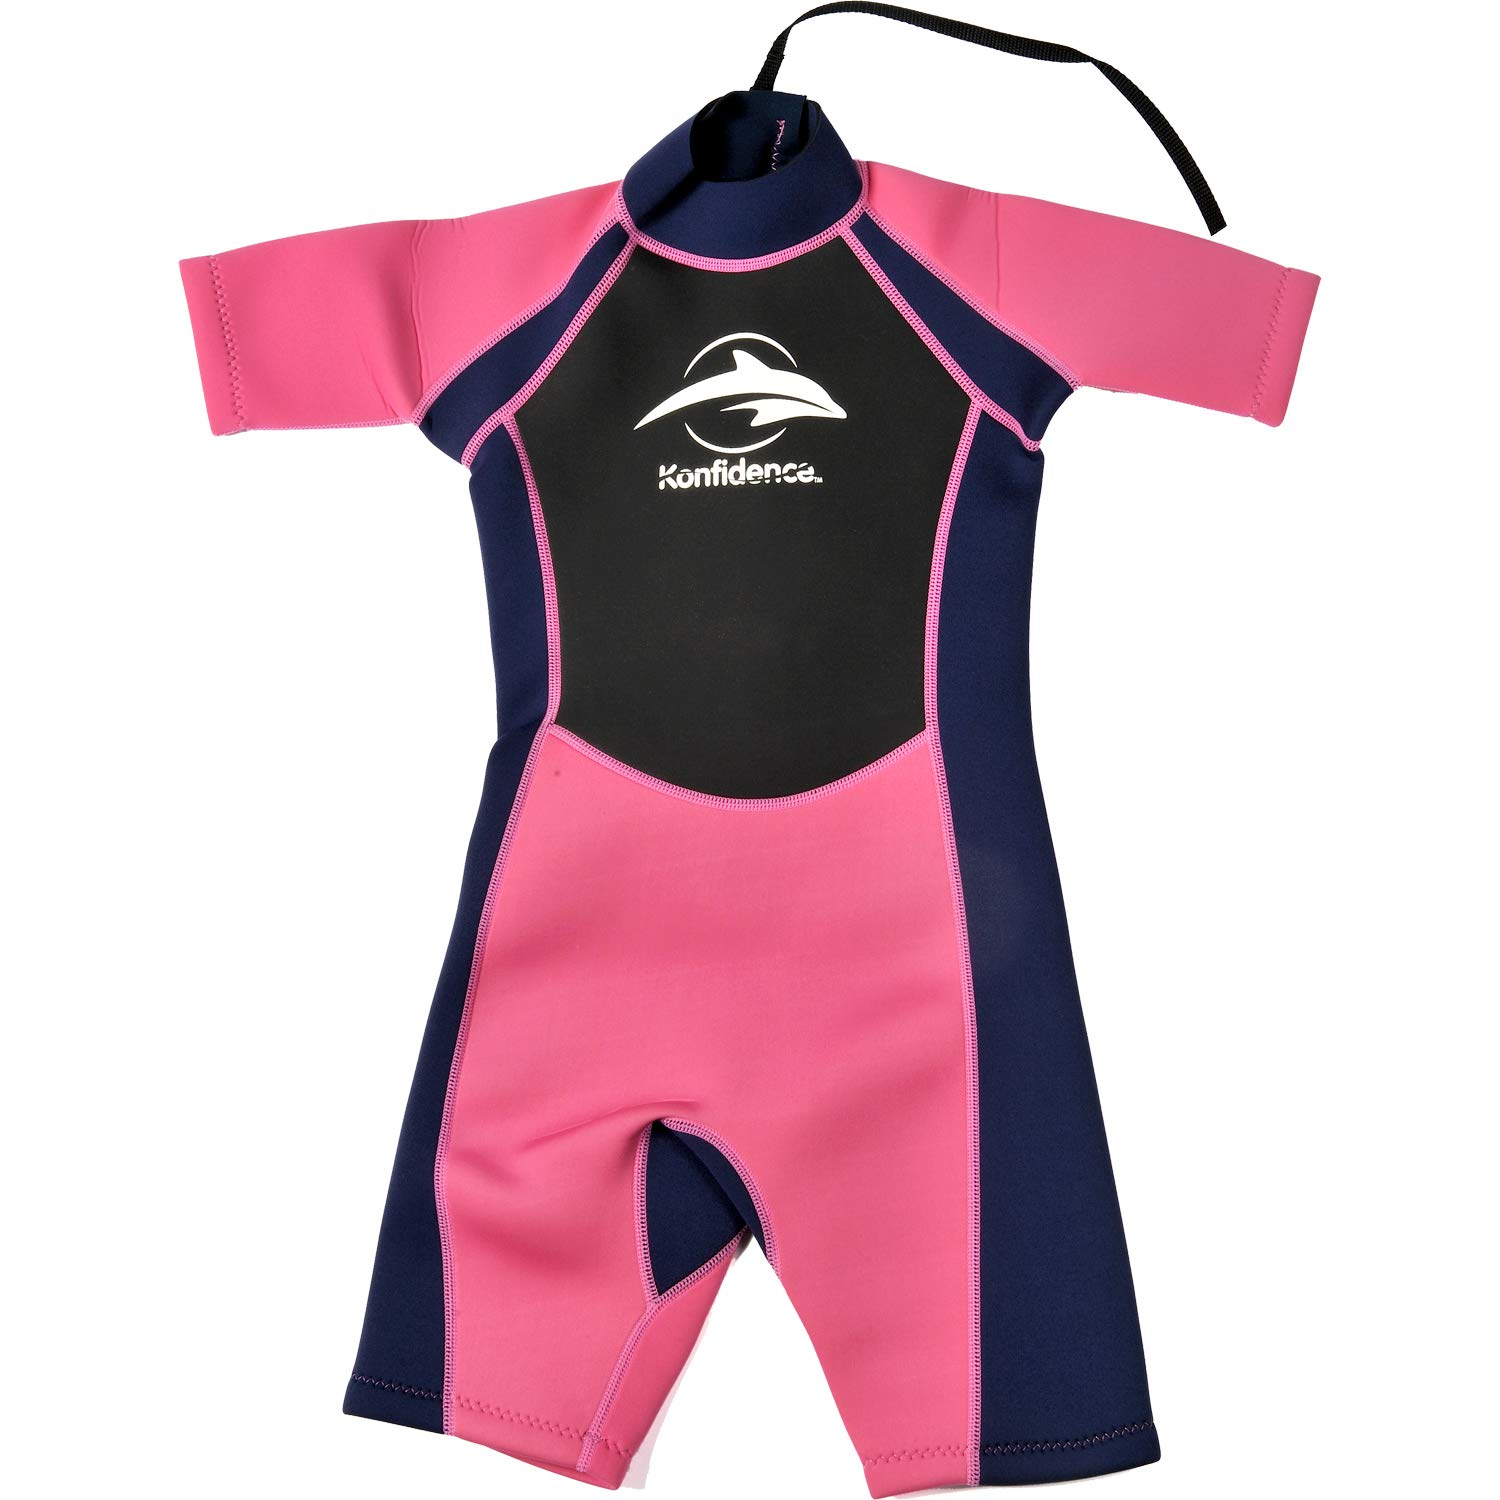 Konfidence Shorty Children's Wetsuit - Pink (9-10 Years) by Konfidence